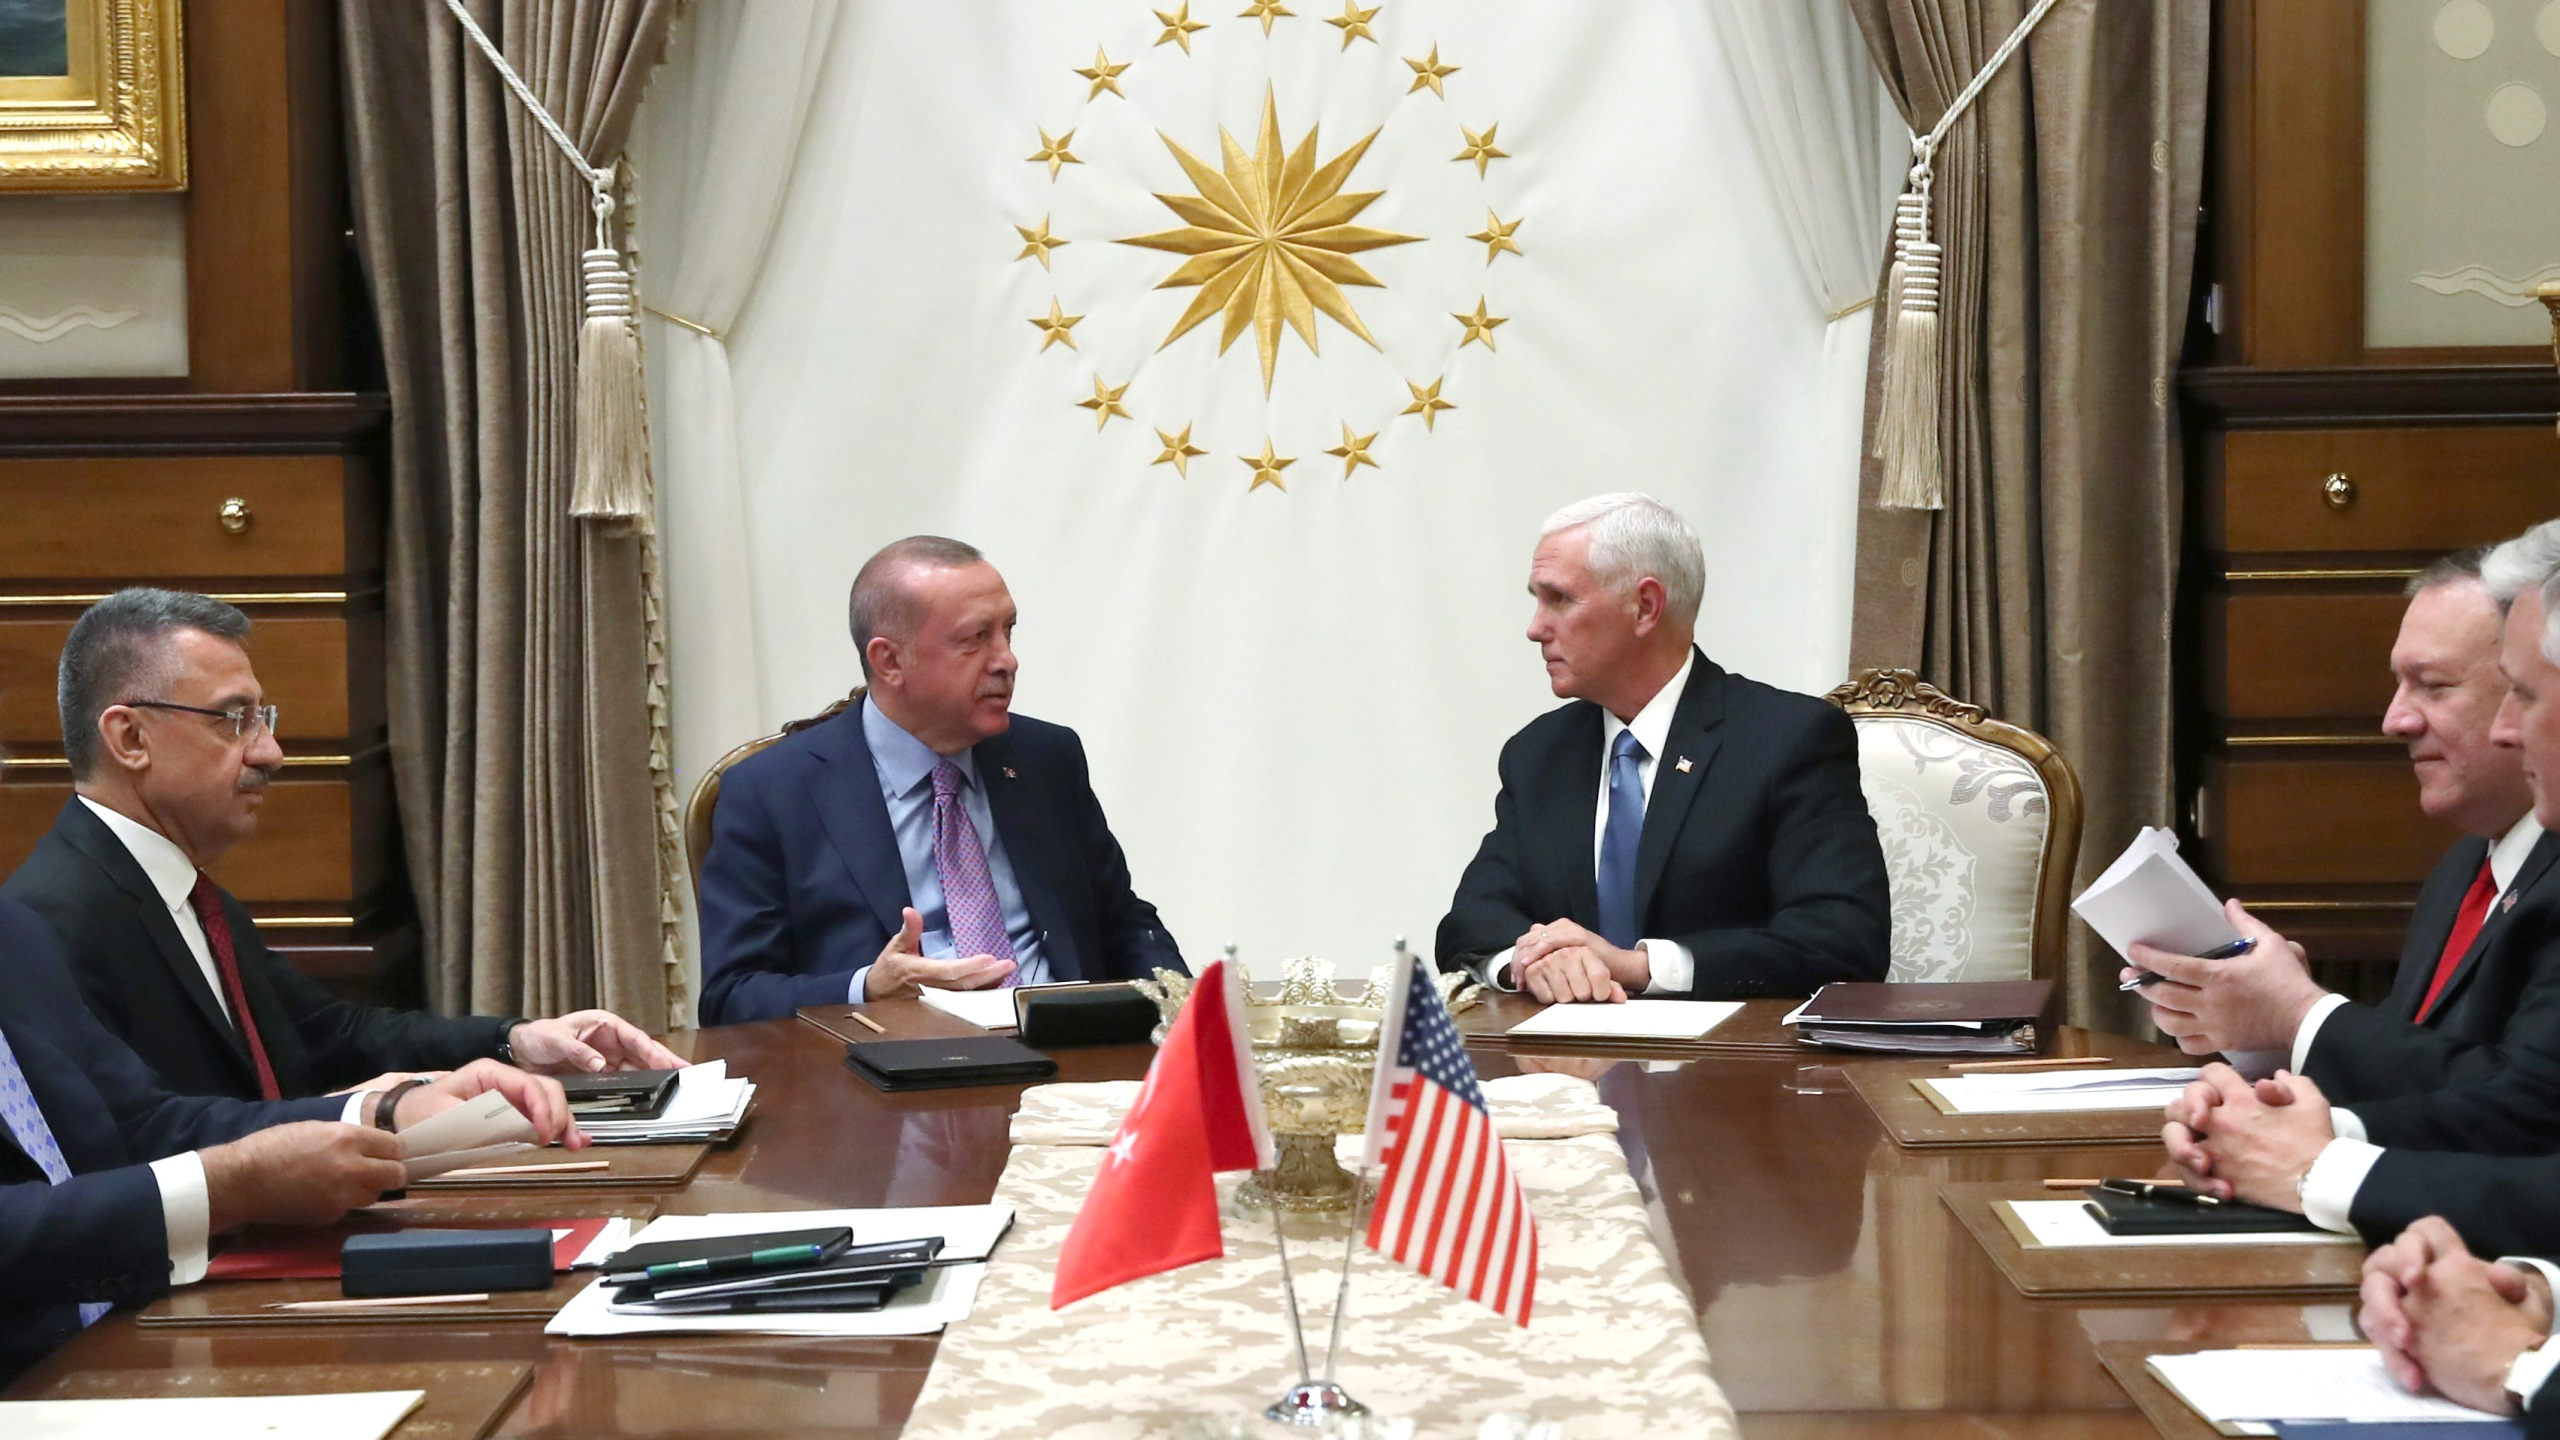 In this handout image provided by the Turkish presidency, Turkish President Recep Tayyip Erdogan meets with U.S. Vice President Mike Pence and Secretary of State Mike Pompeo at Presidential Complex in Ankara, Turkey on Oct. 17, 2019. (Credit: Murat Kula/Turkish Presidency via Getty Images)